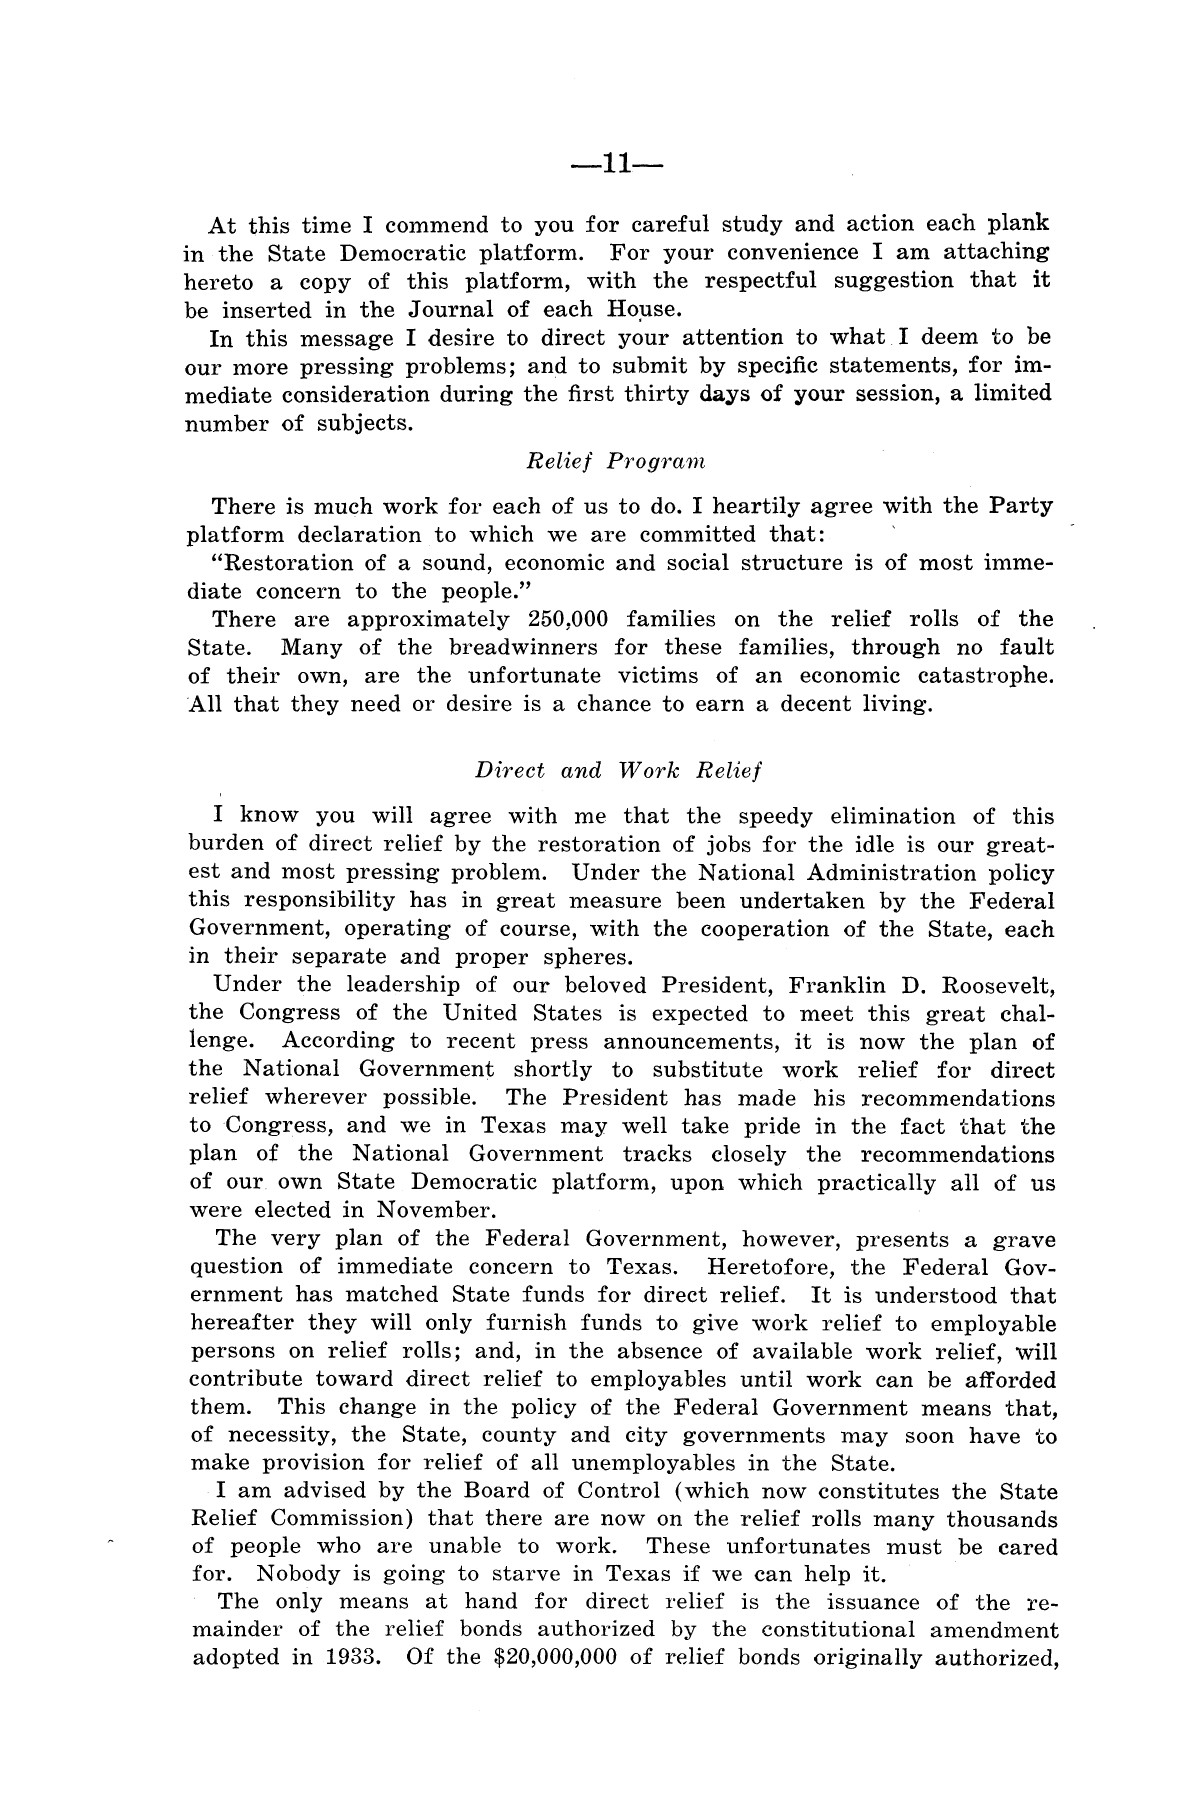 Legislative Messages of Hon. James V. Allred, Governor of Texas 1935-1939                                                                                                      [Sequence #]: 10 of 263